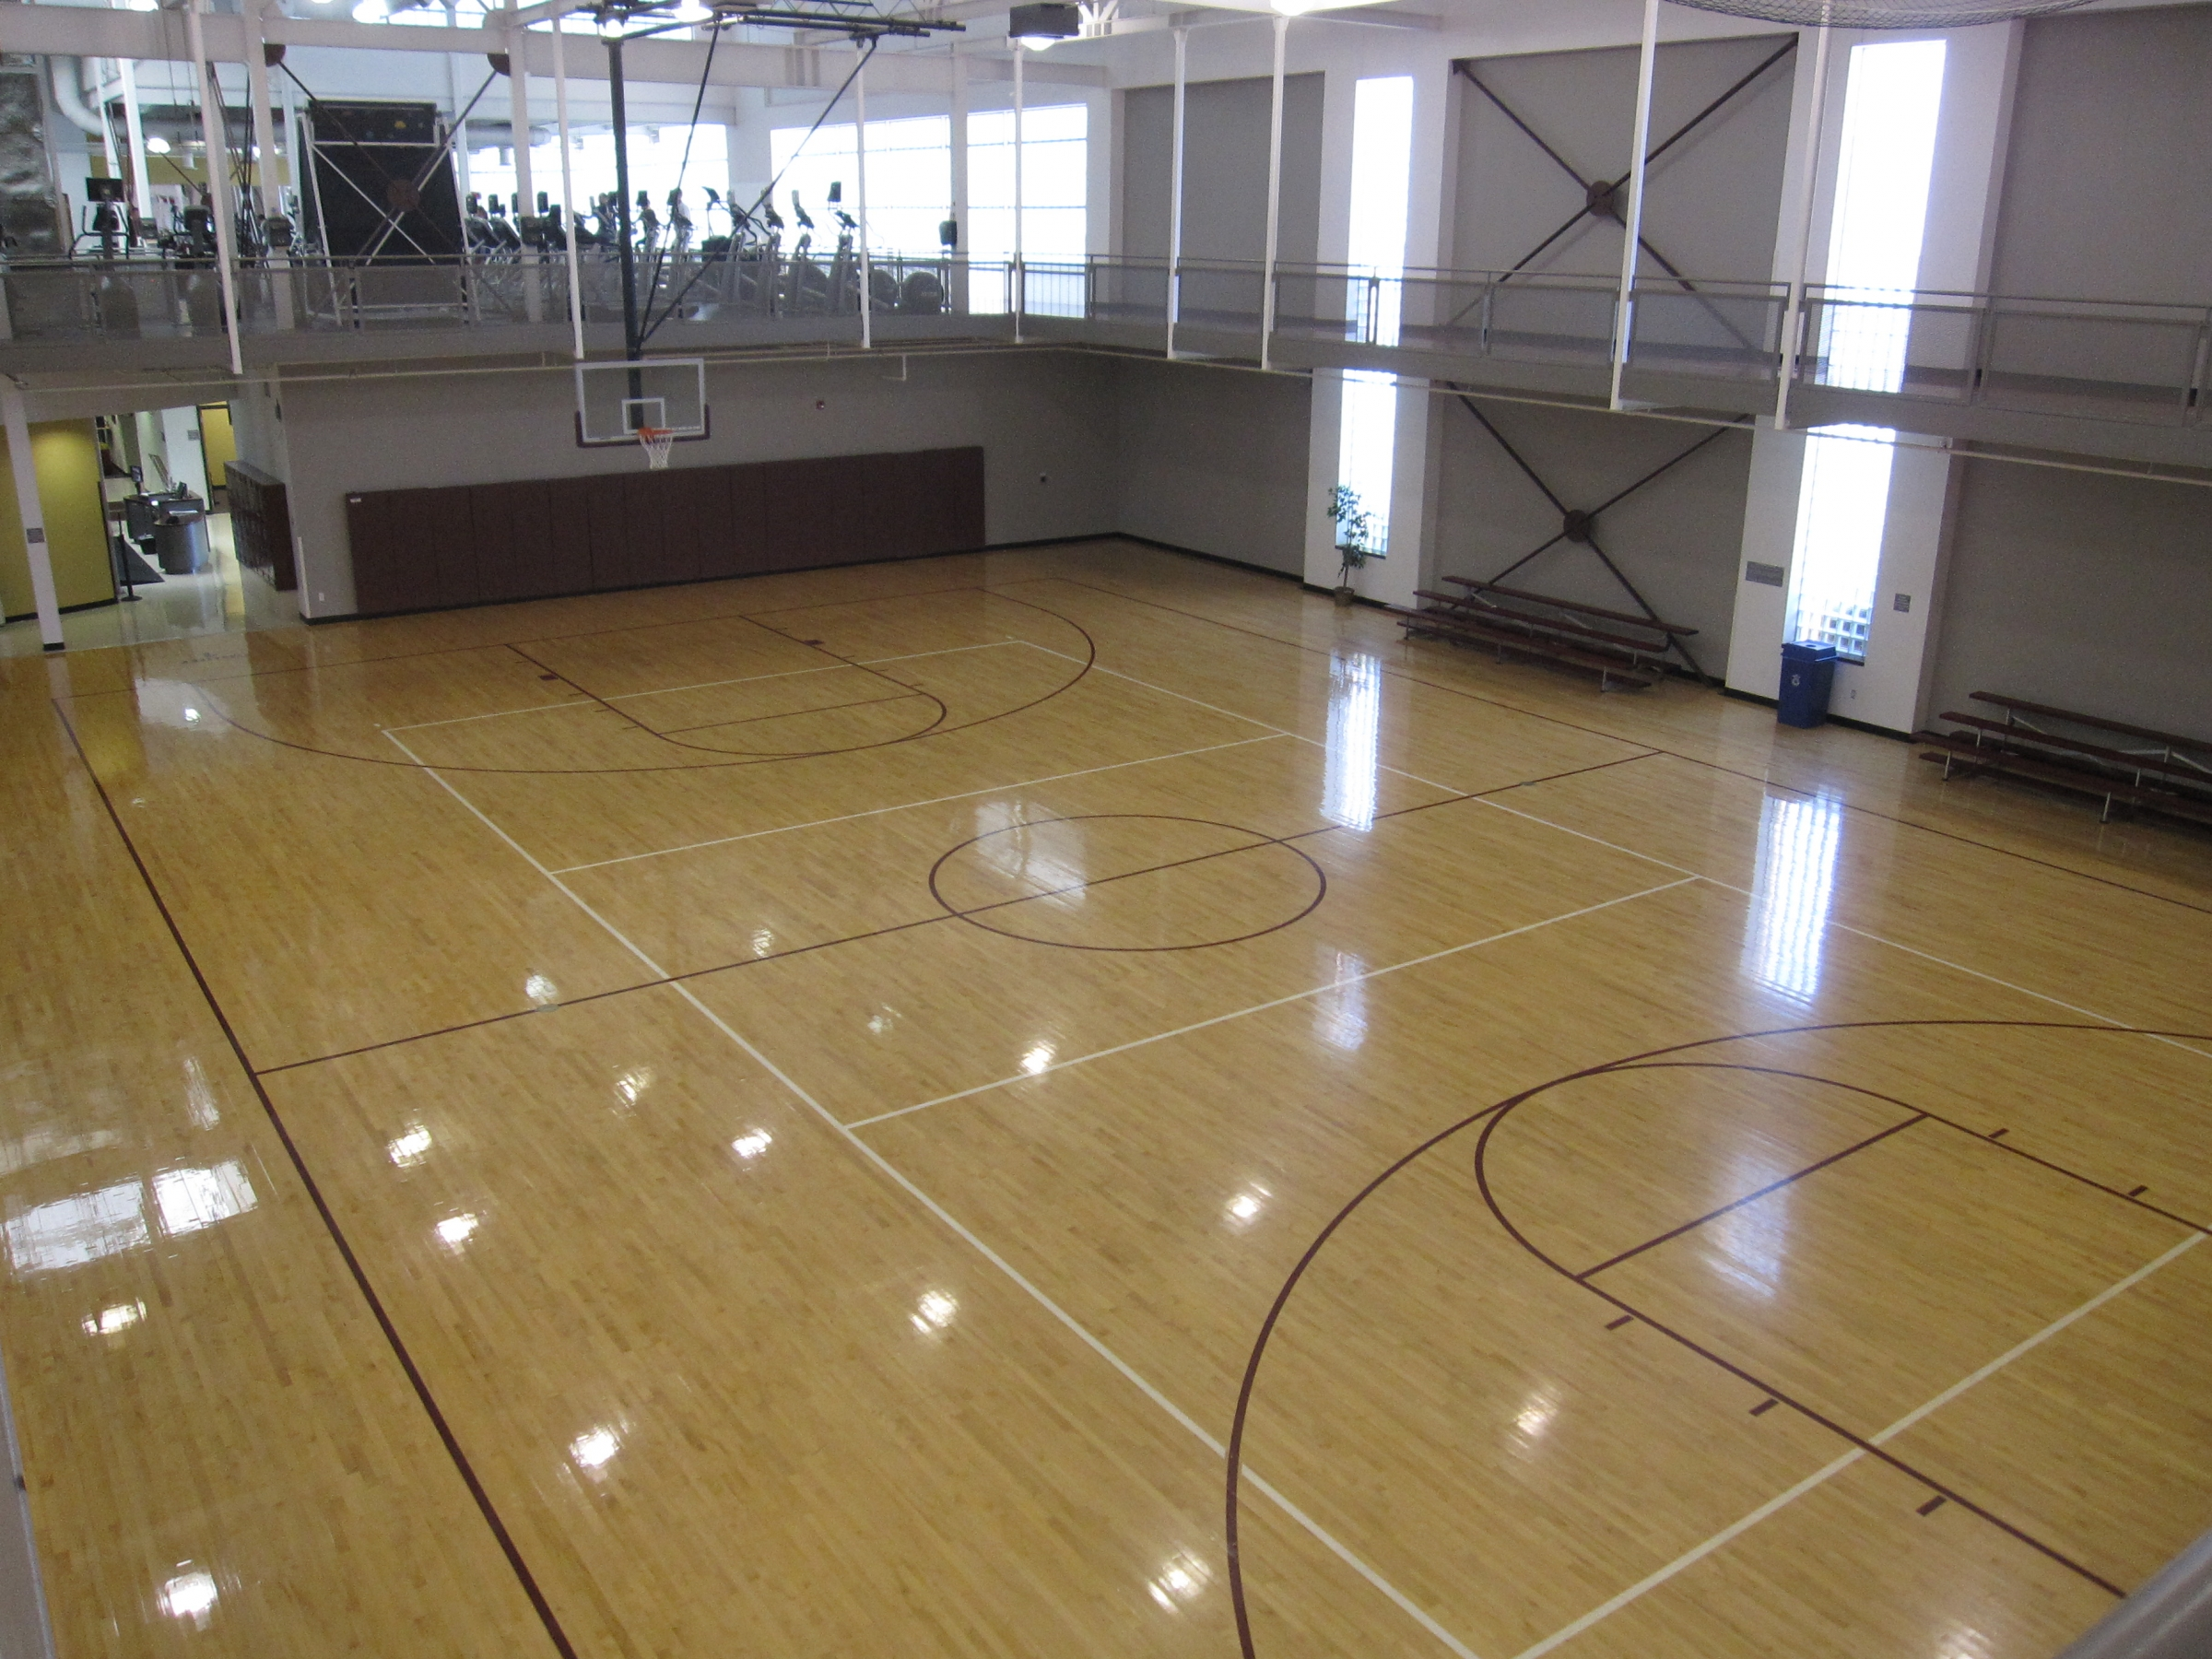 Facilities campus recreation eastern kentucky university for Indoor basketball court construction